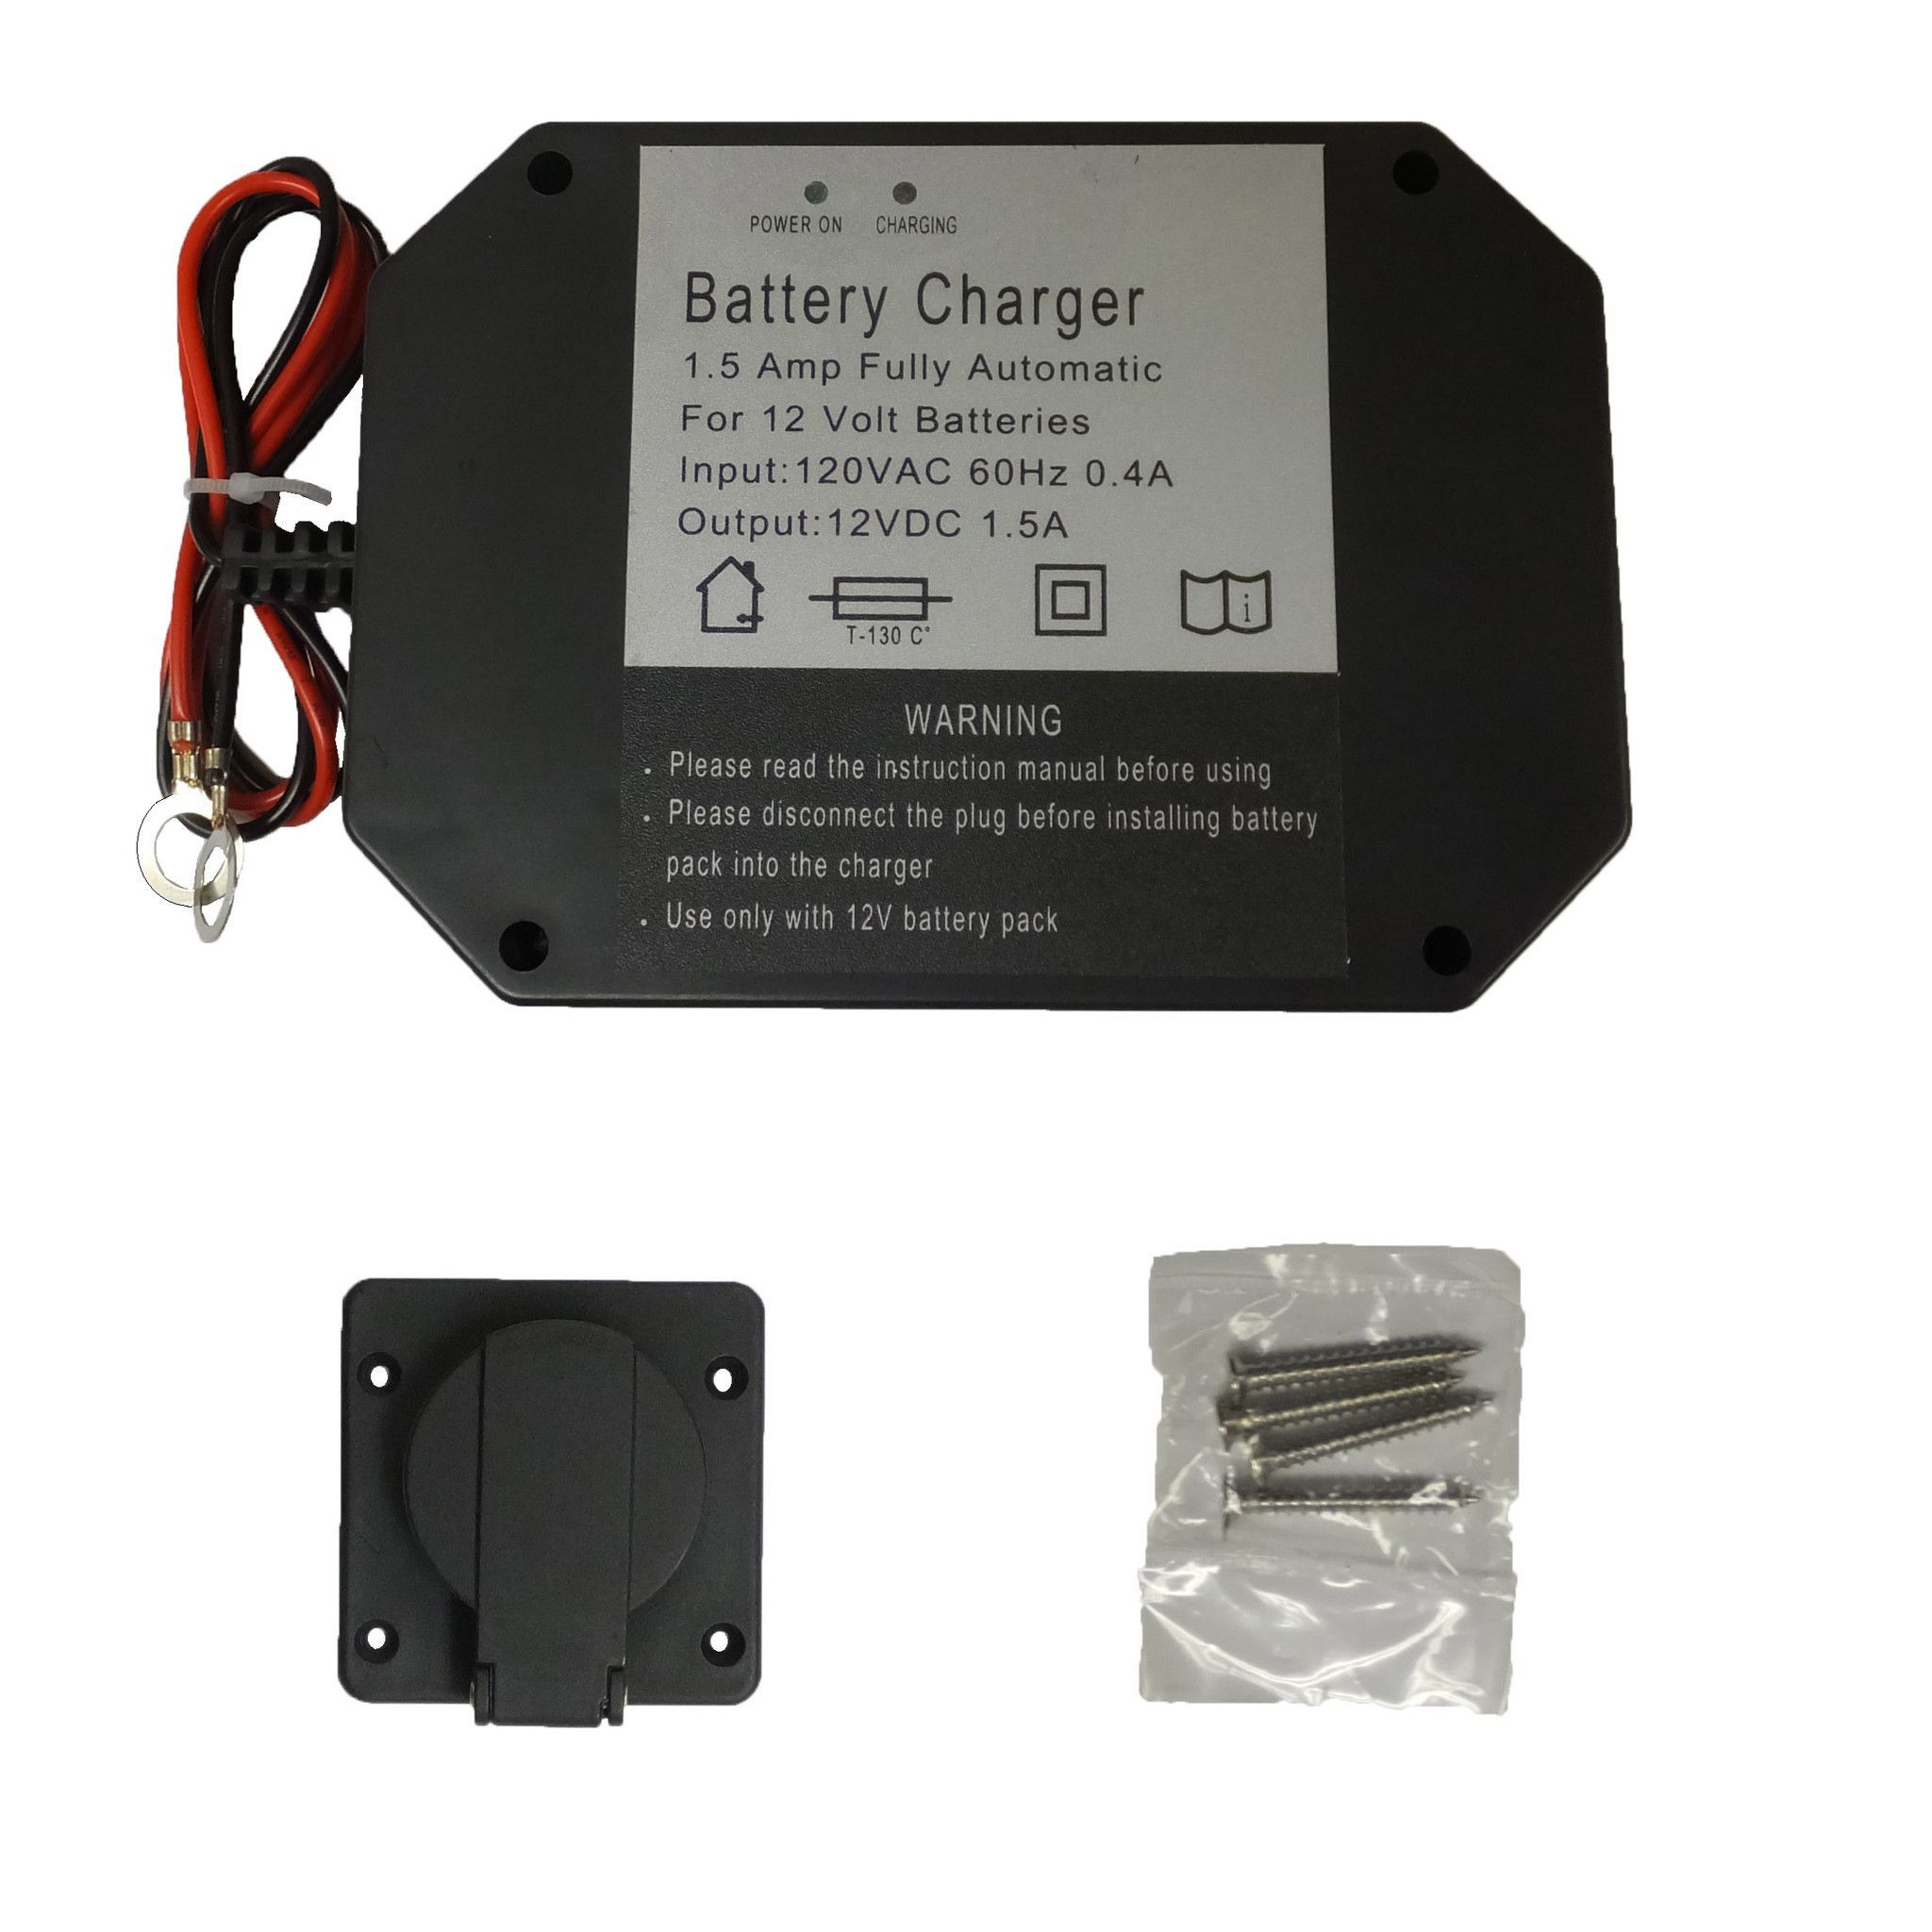 Panel Mount Battery Charger 15 Amps Dump Trailer Products Wiring Trailers Camper Caravan 4x4